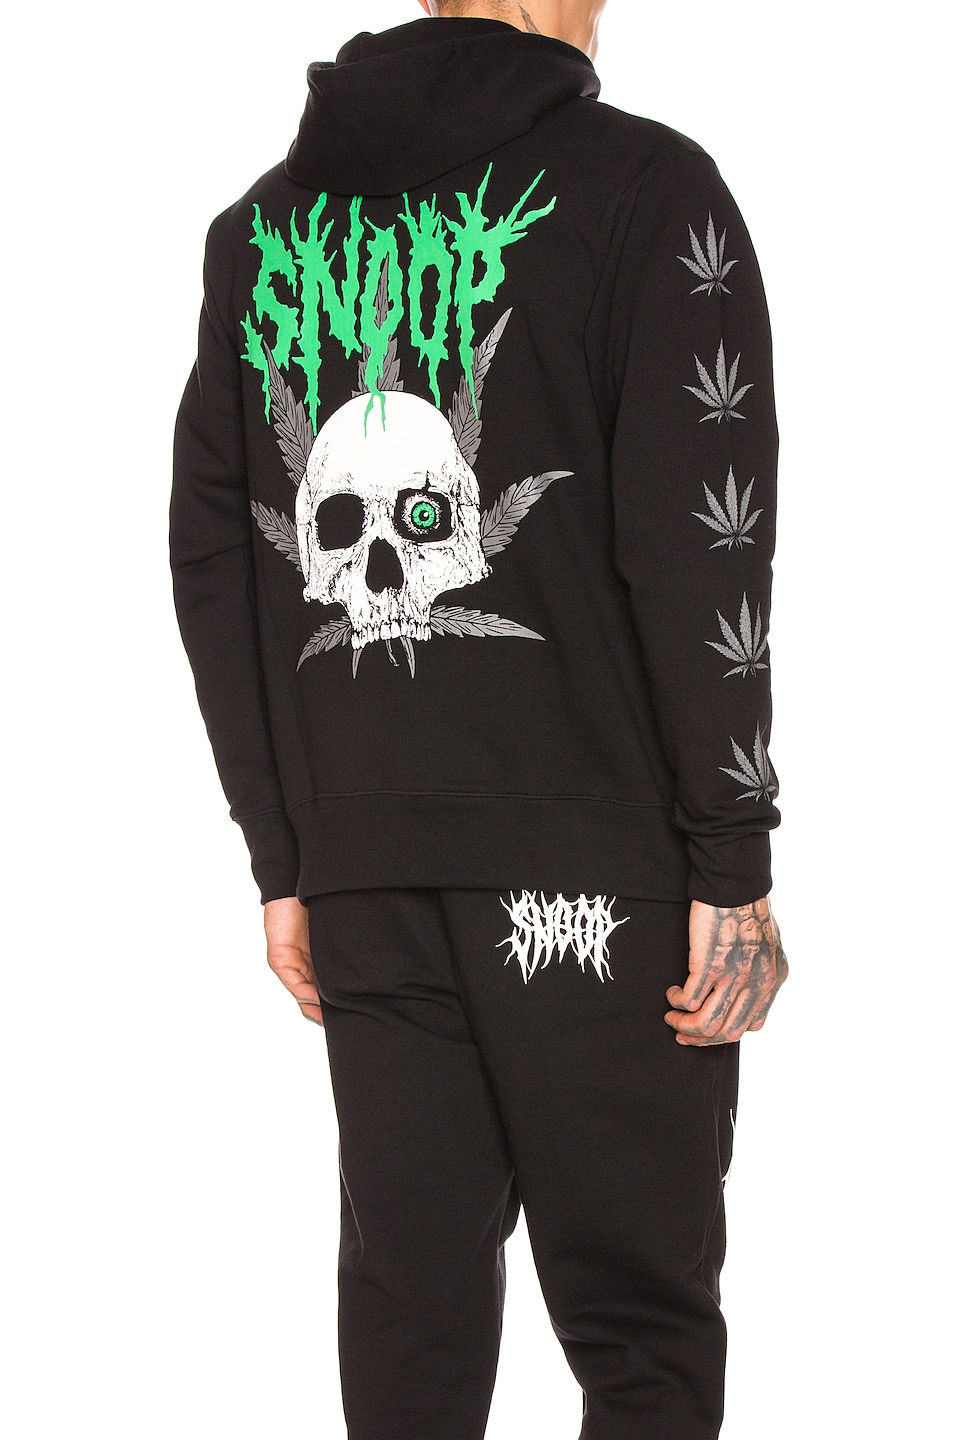 Image 1 of SSS World Corp SSSNOOP Weed Skull Hoodie in Black & Green